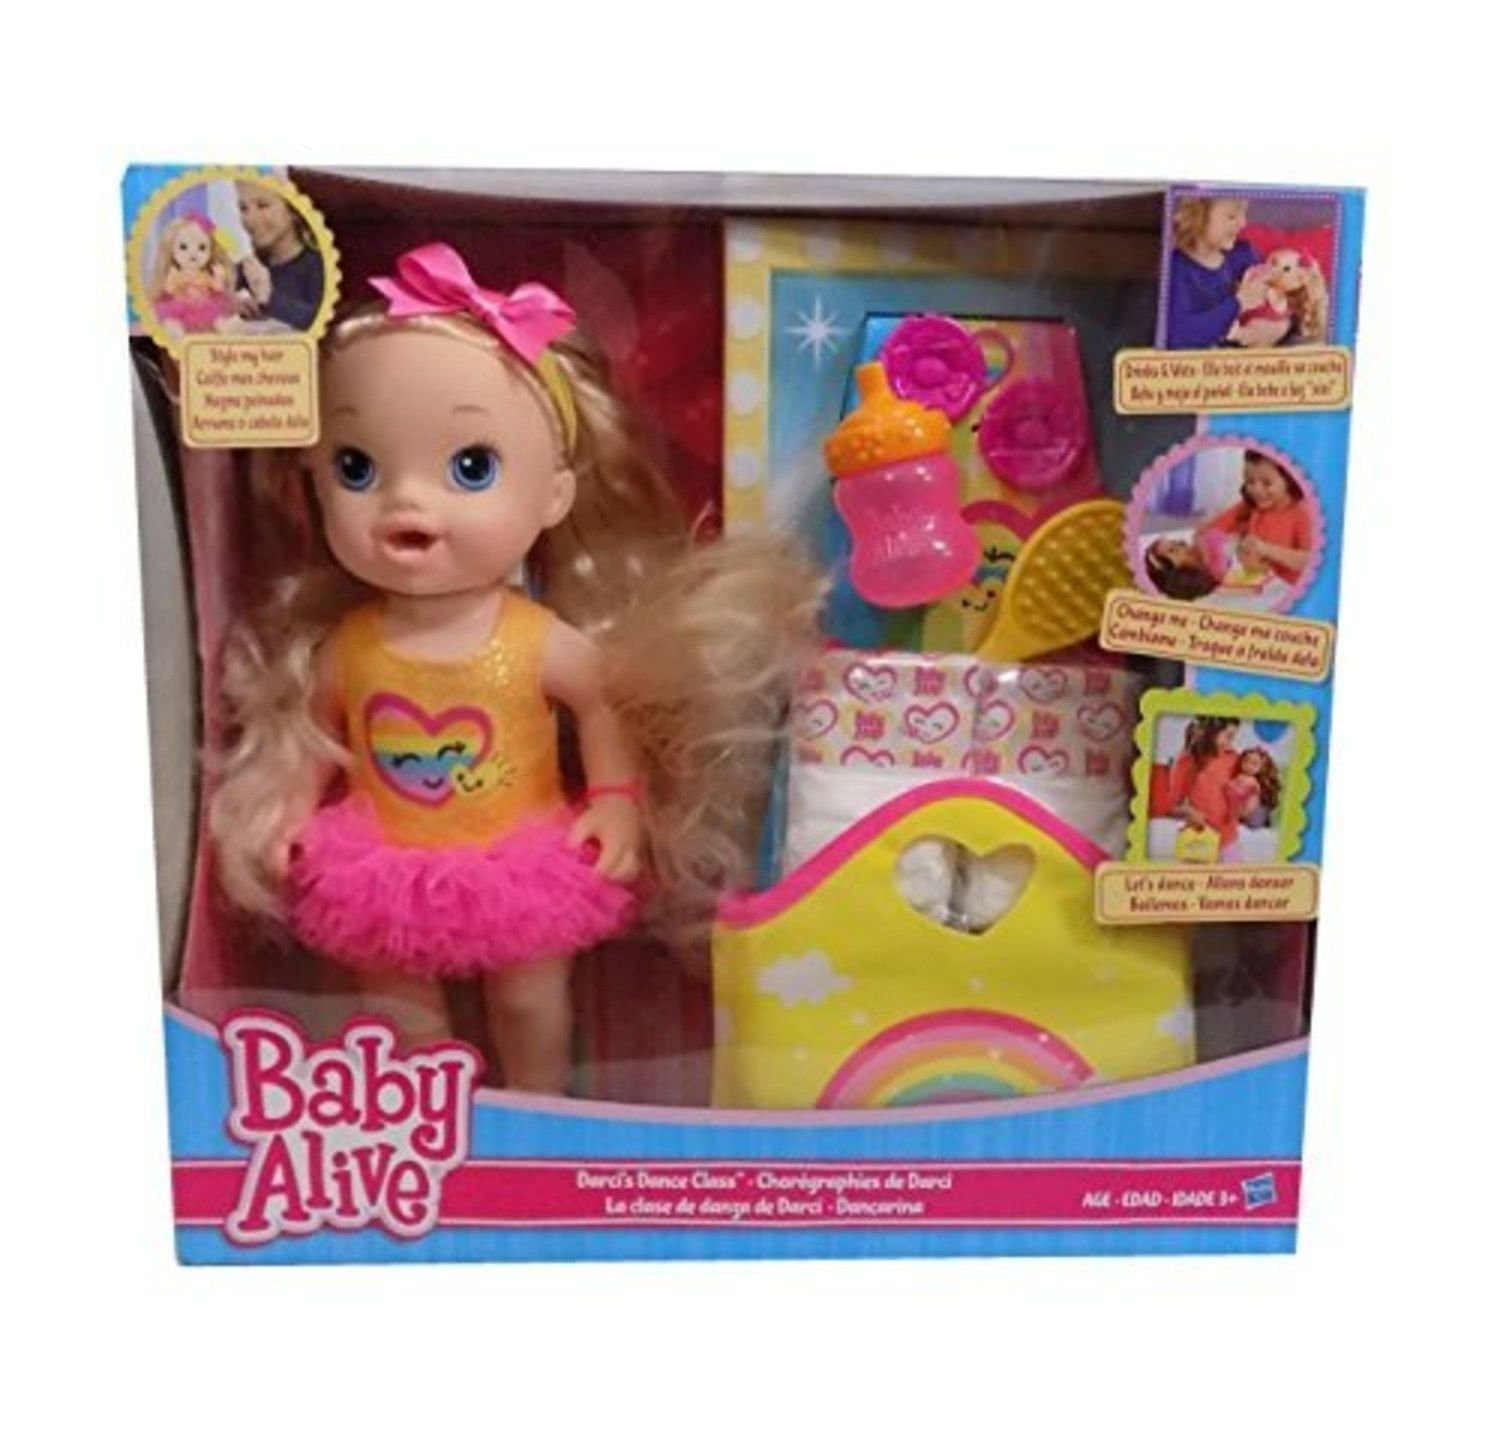 Baby Alive Darcis Dance Class Blonde Hair Doll by Baby Alive